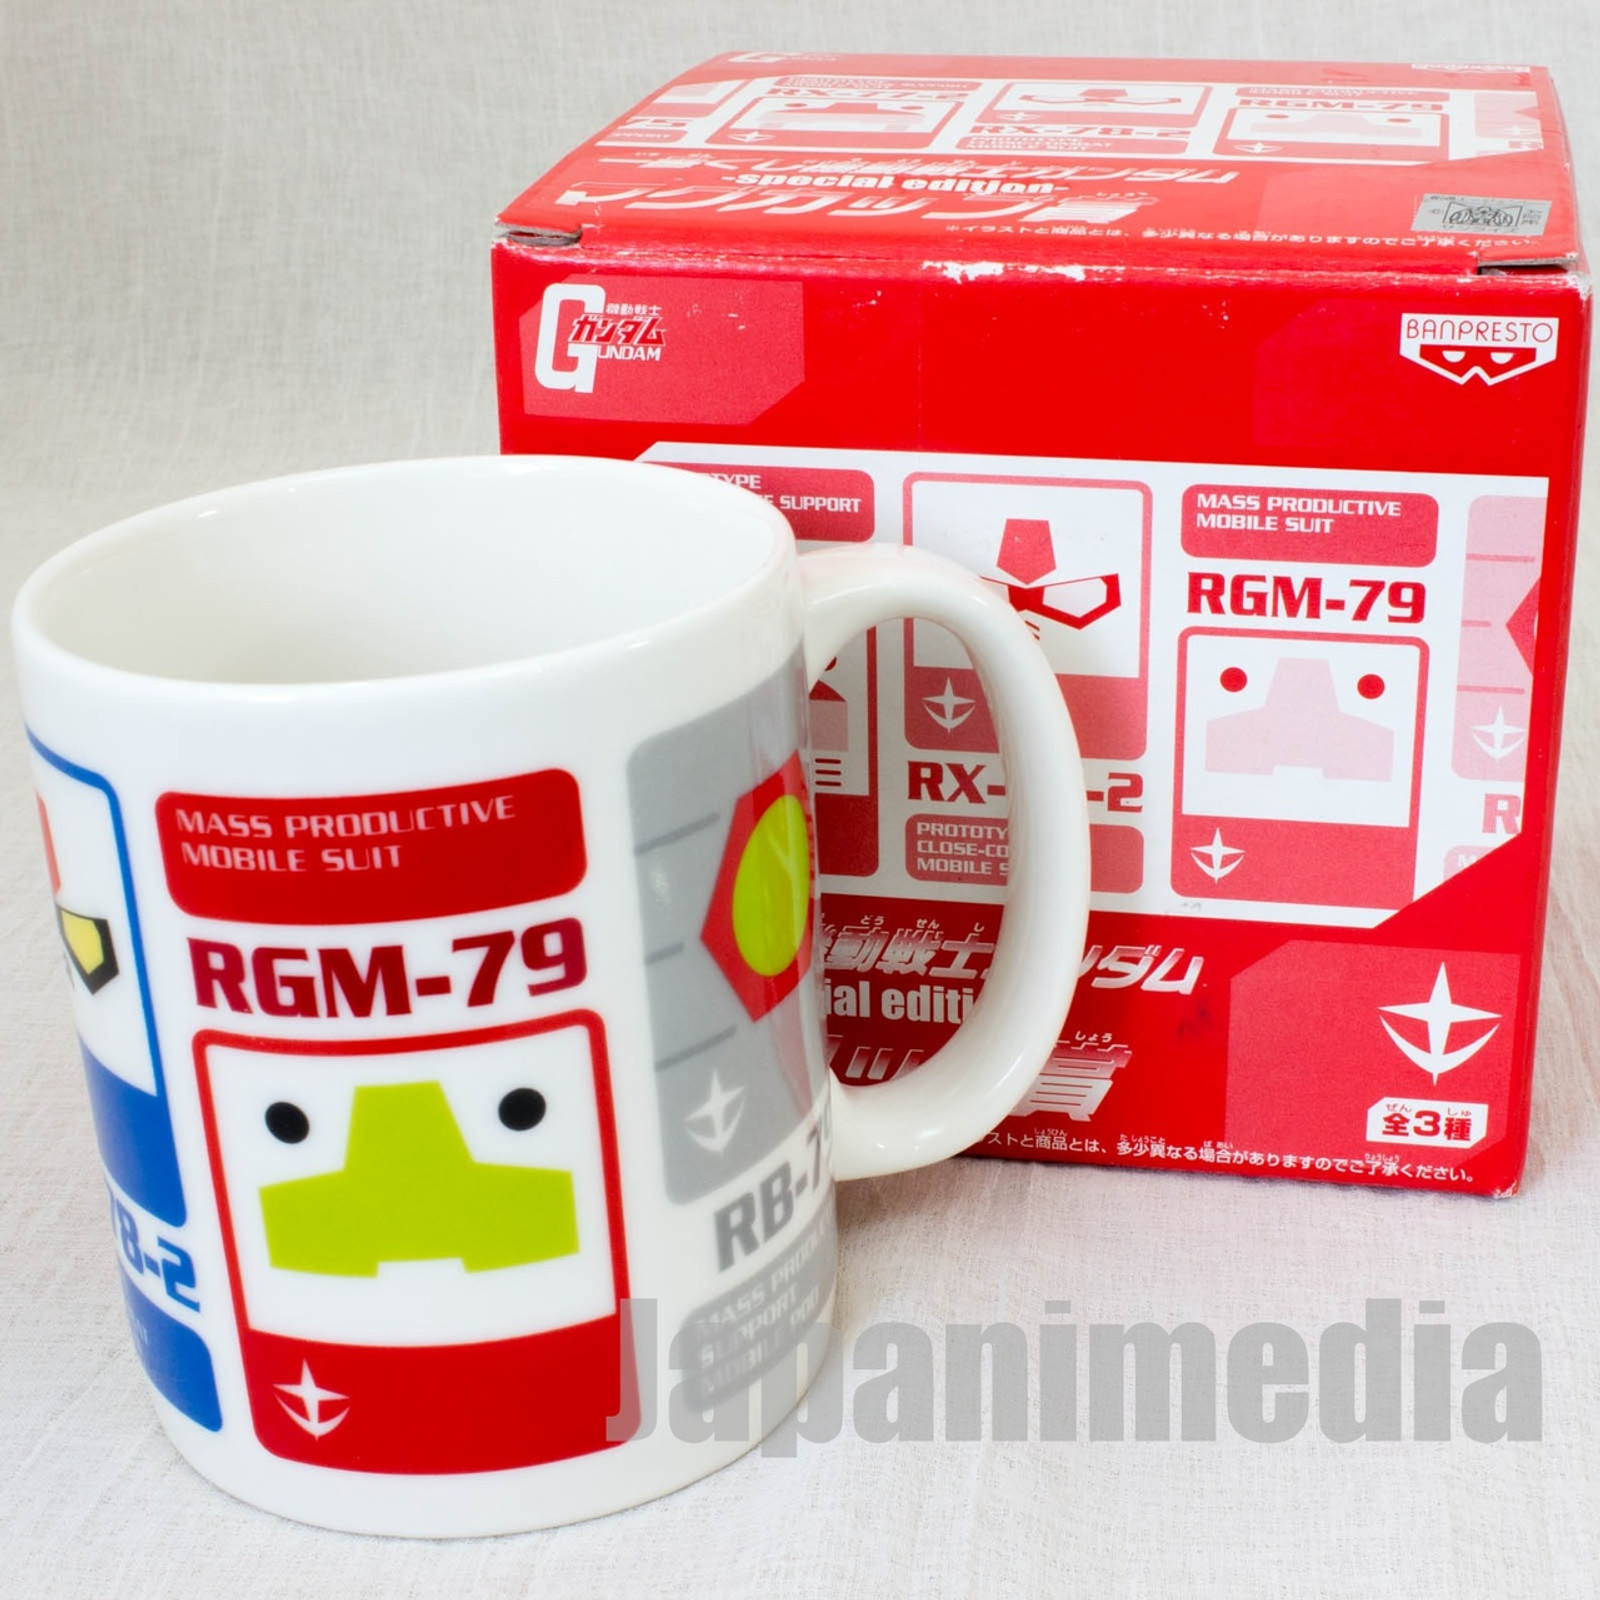 Gundam Mug Earth Federation Force Mobile Suit Banpresto JAPAN ANIME MANGA